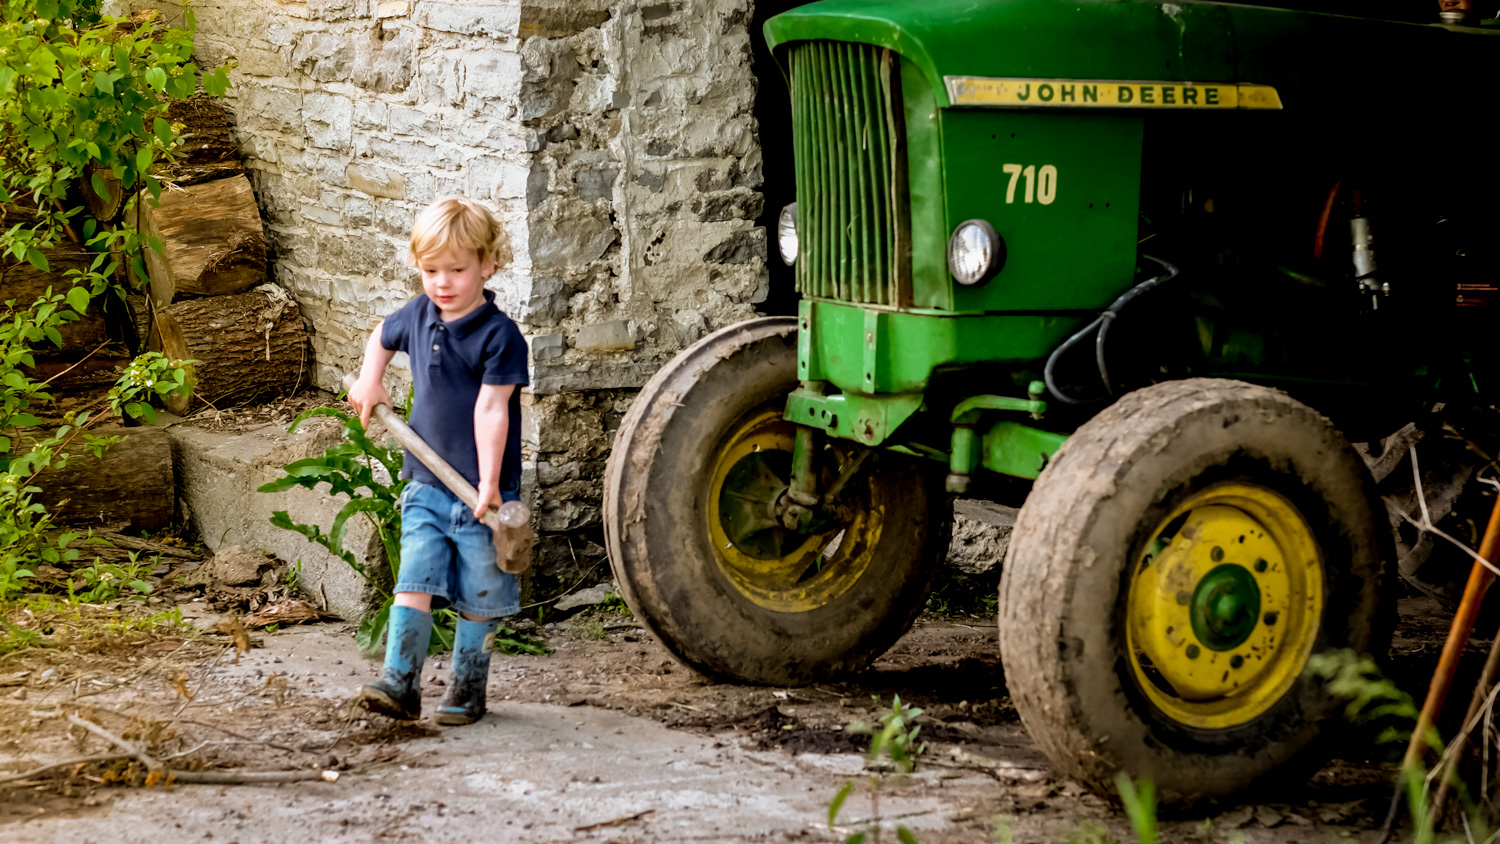 https://i1.wp.com/digital-photography-school.com/wp-content/uploads/2019/07/Toddler-photo-session-with-tractor.jpg?resize=1500%2C844&ssl=1